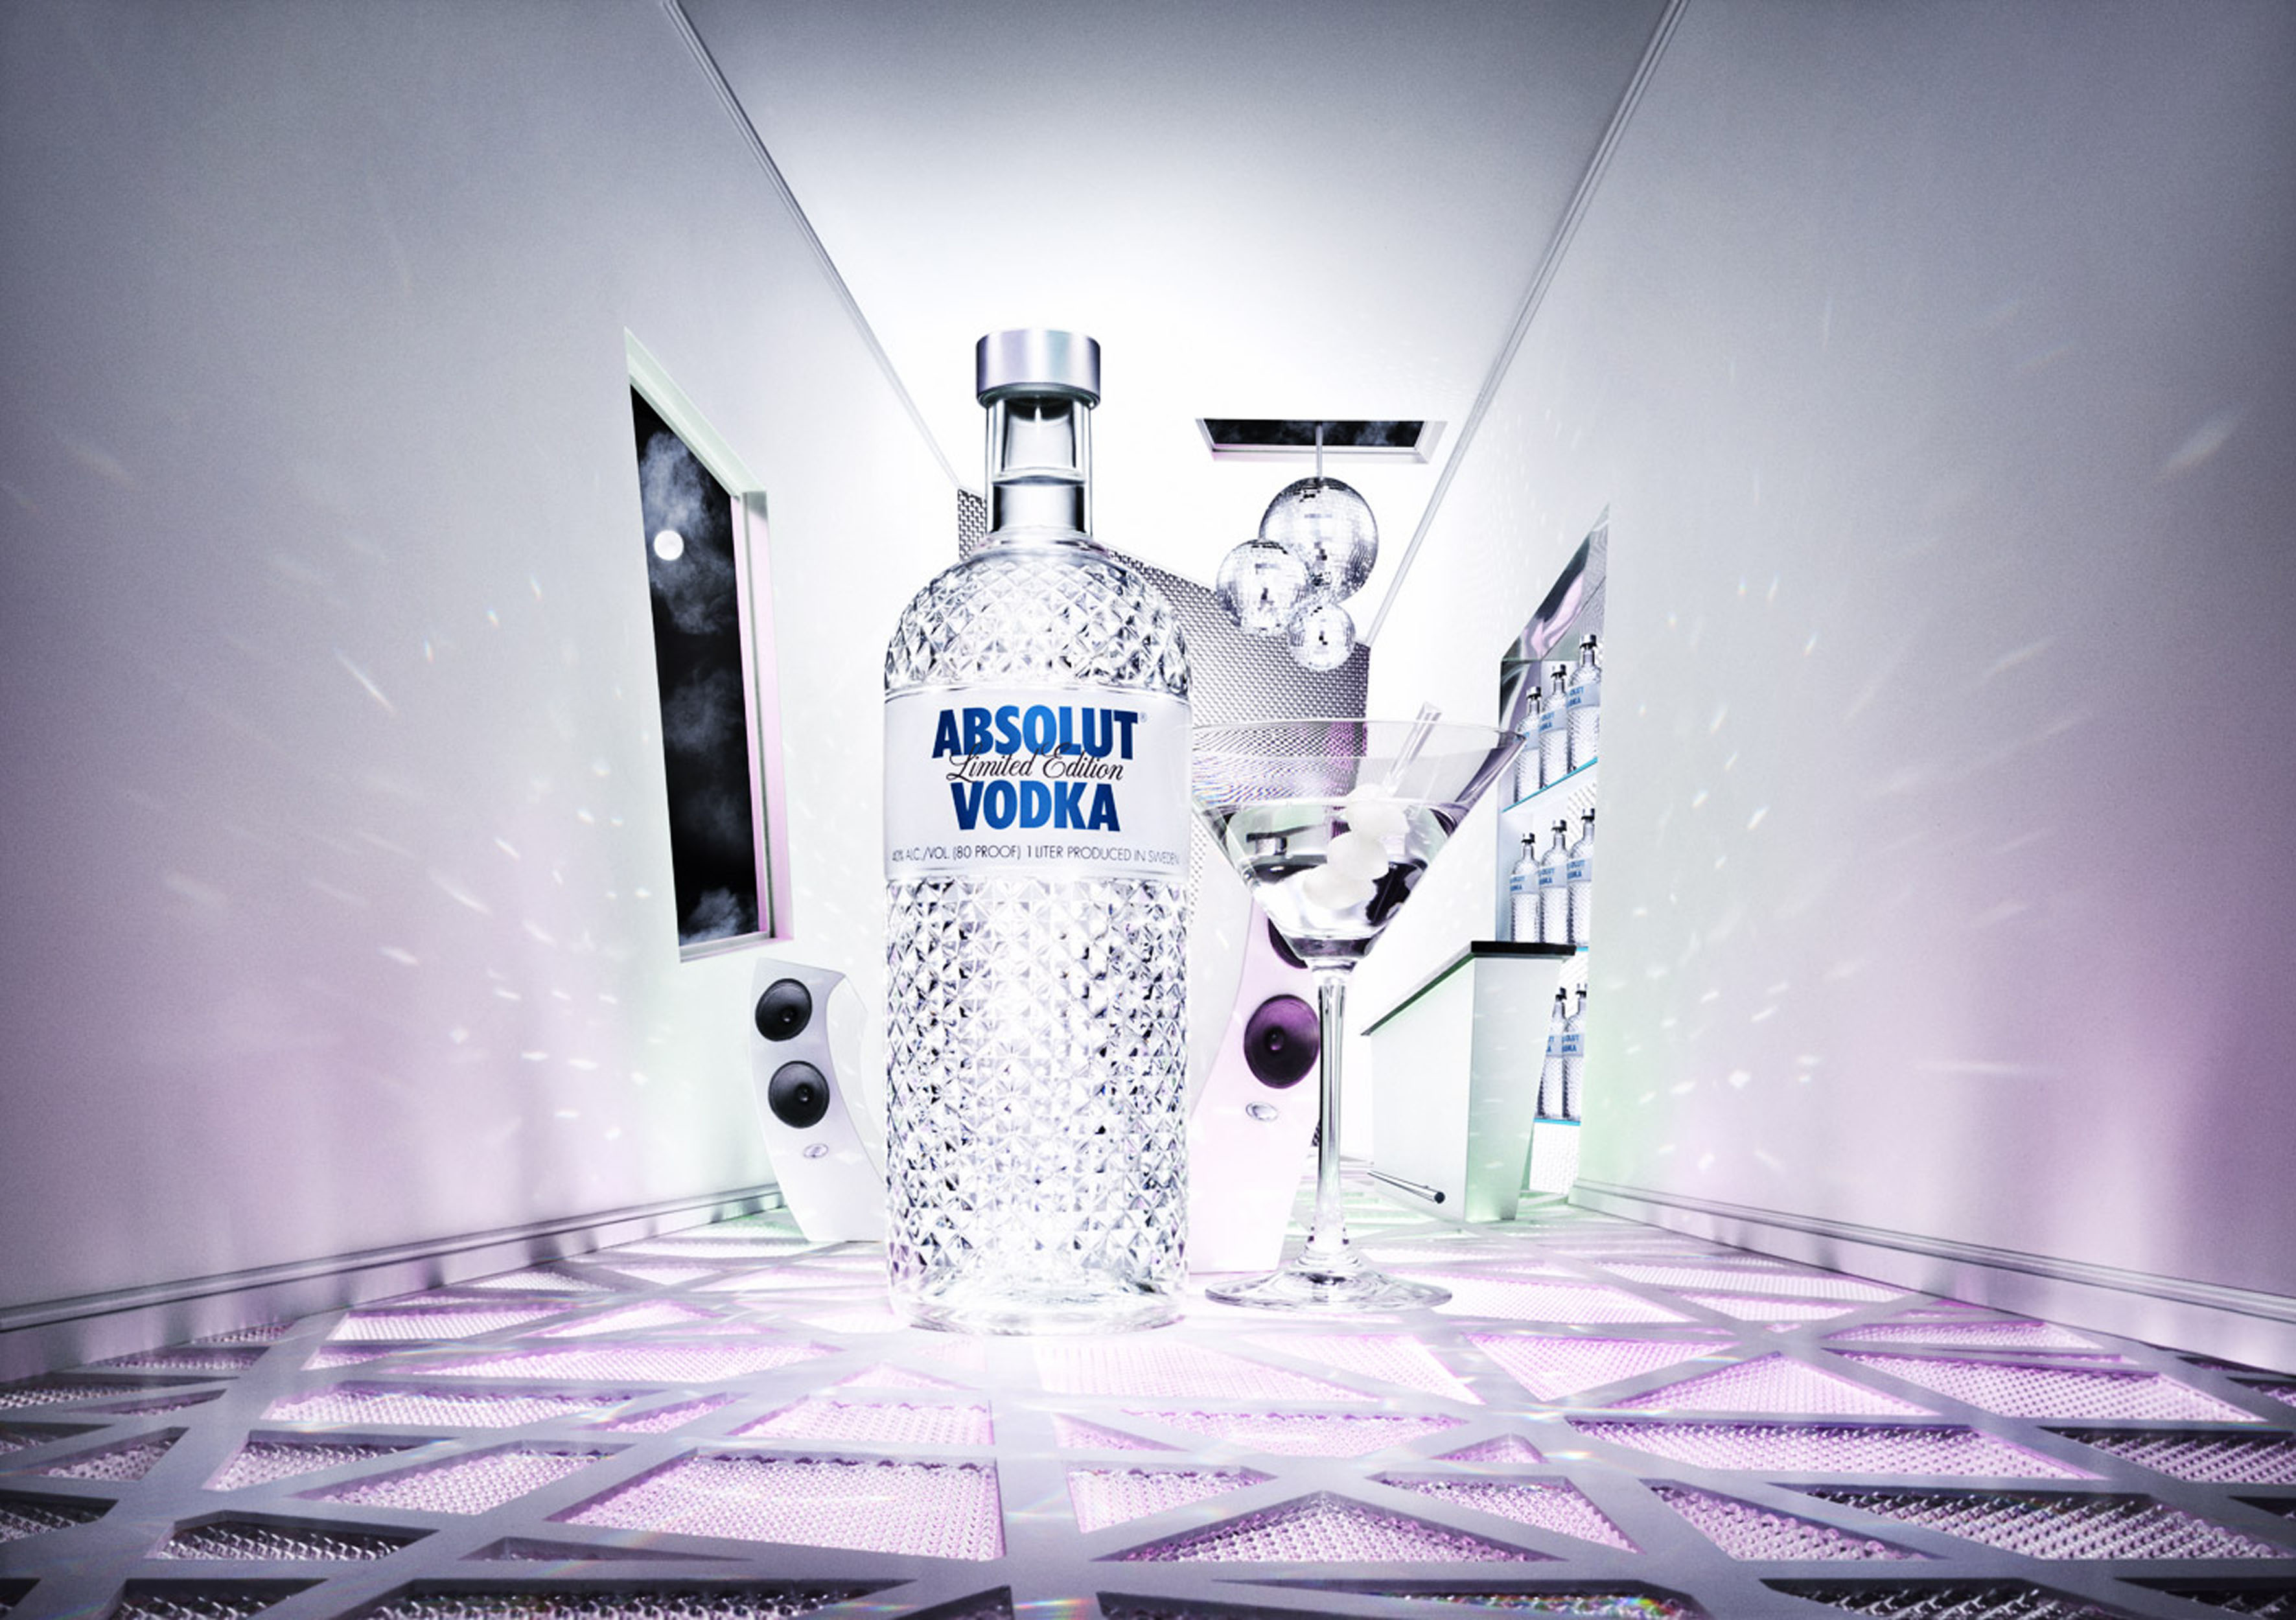 jensmortensen-absolut-vodka-376fdf87